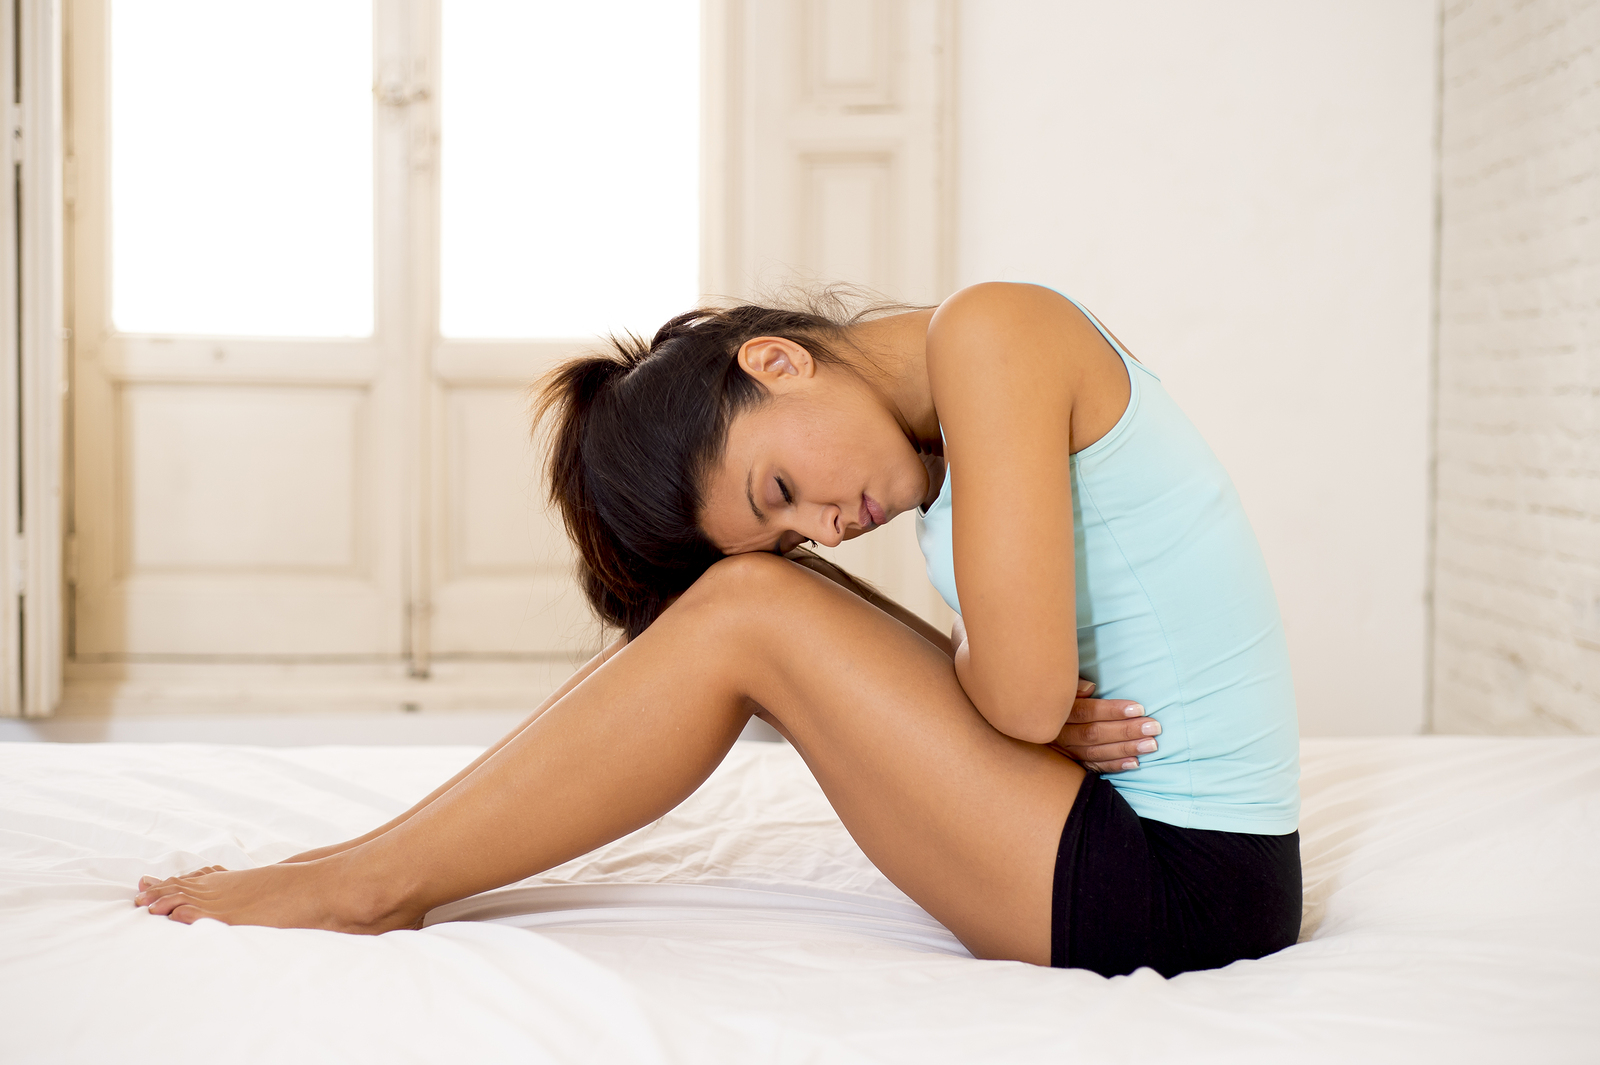 Women Suffering from Chronic Abdominal Pain